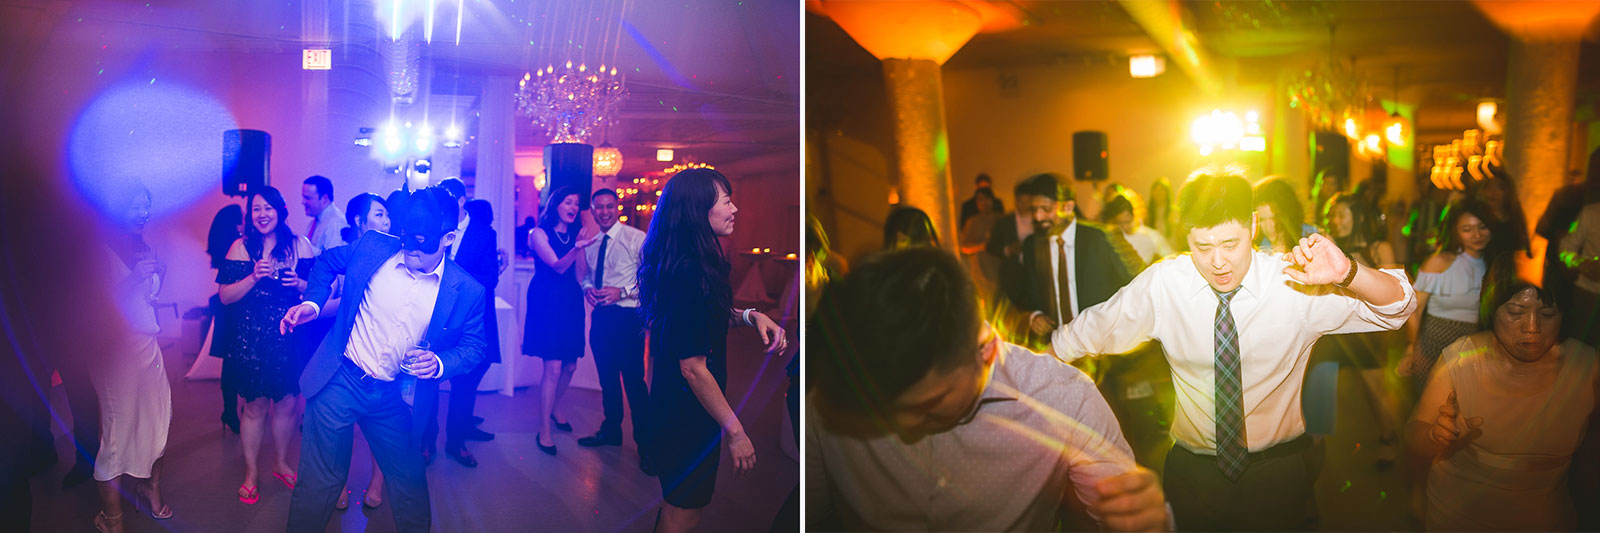 46 big wedding reception at room 1520 - Rebecca + Doha // Wedding Photos at Room 1520 Chicago